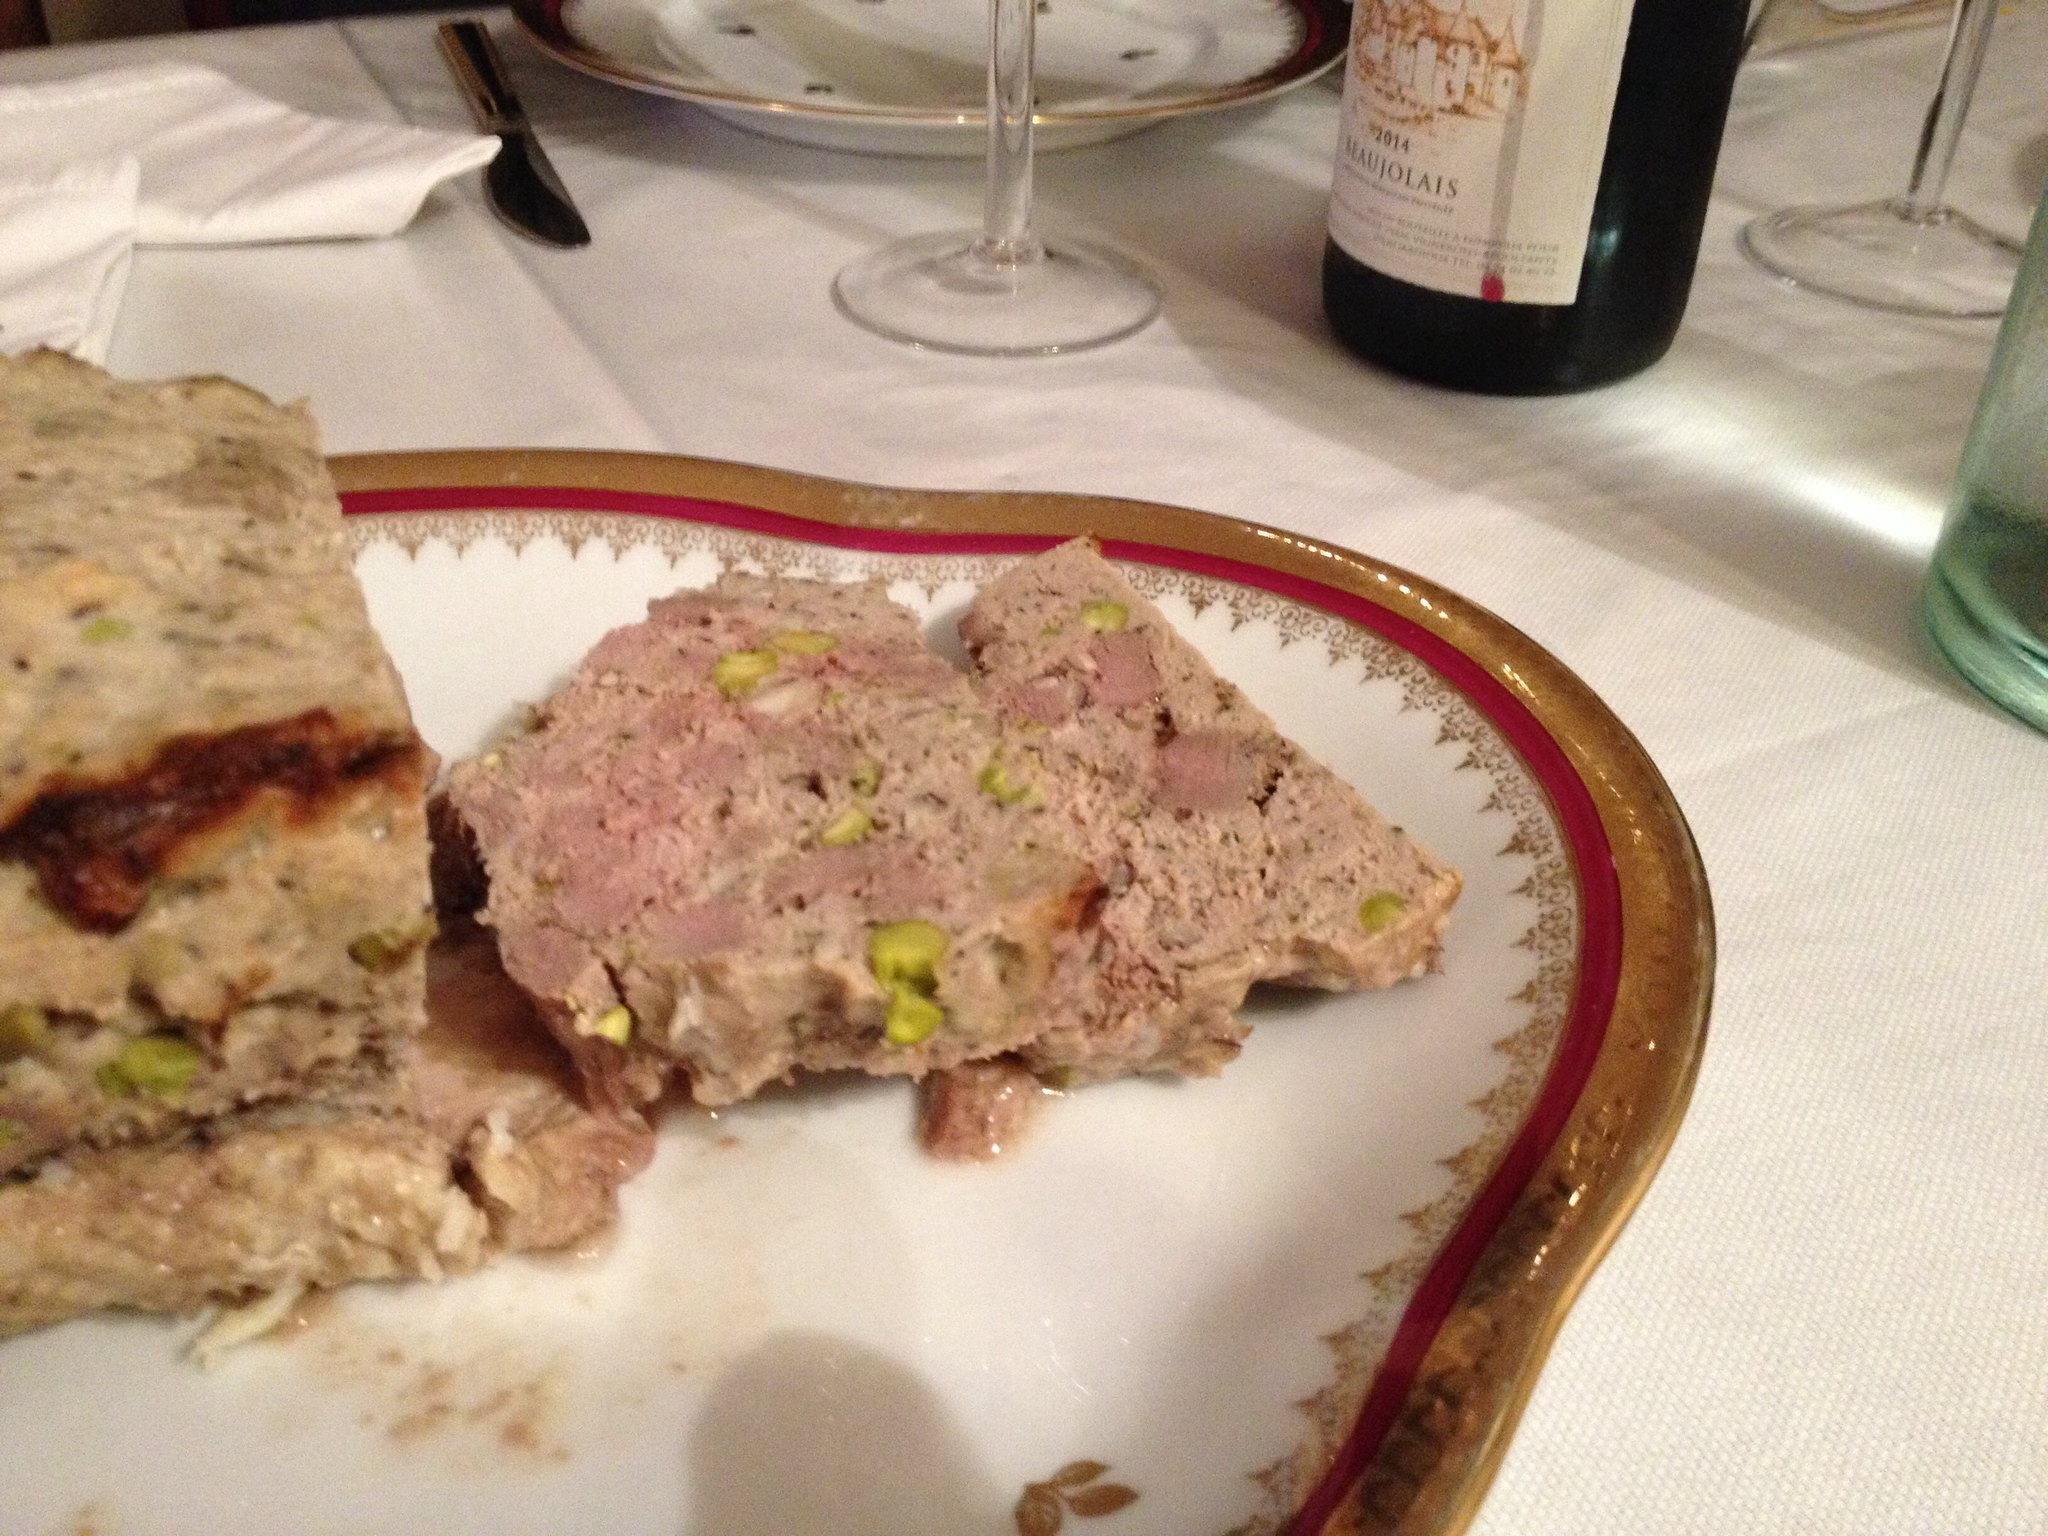 No Reservations Quebec - Terrine de canard aux pistaches - photo by joellehellenique under CC BY-SA 2.0